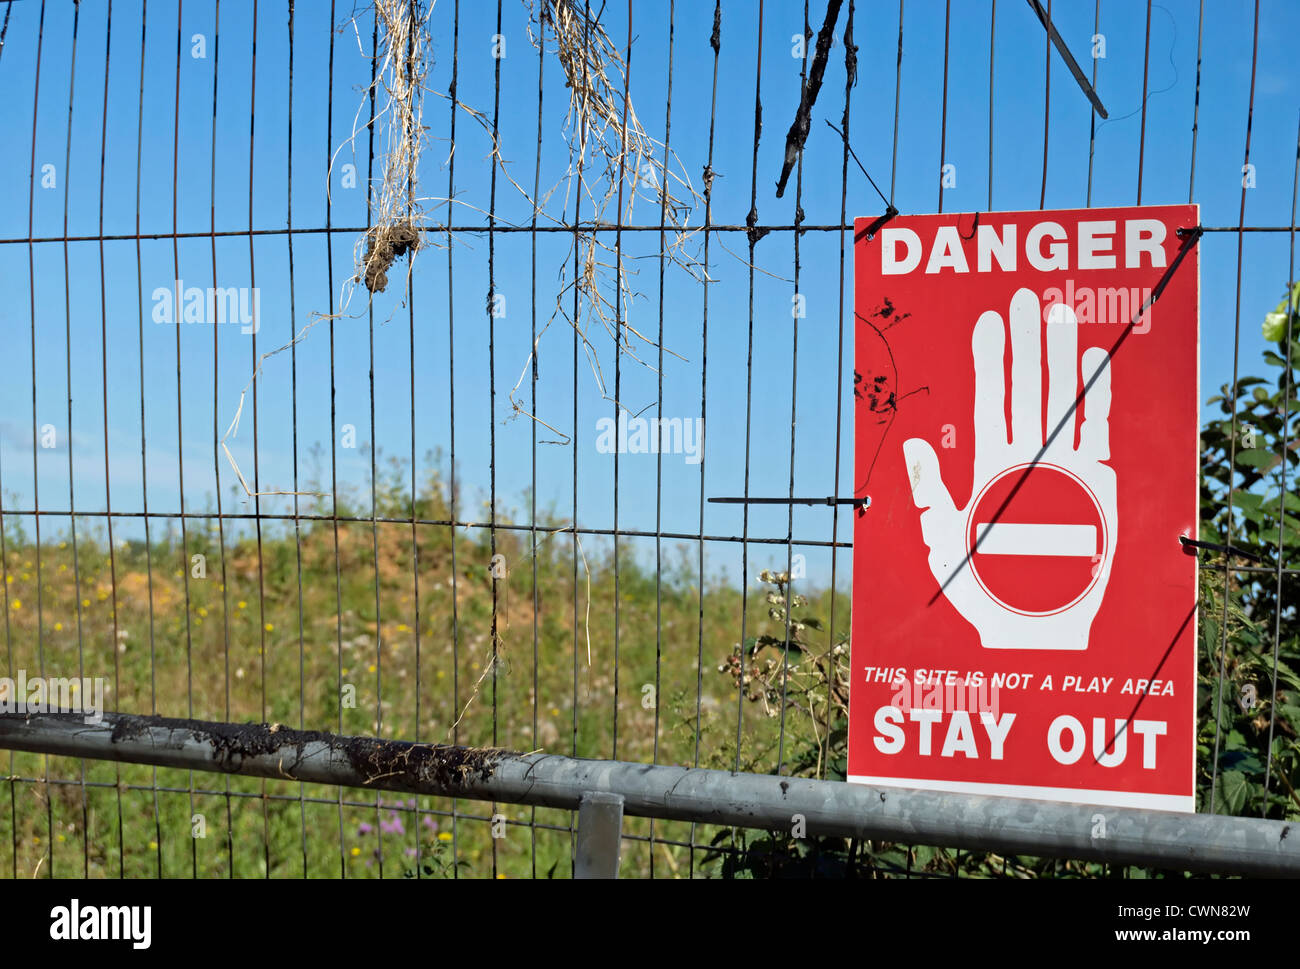 danger stay out sign on a fence adjacent to wasteground in harlington, middlesex, england - Stock Image